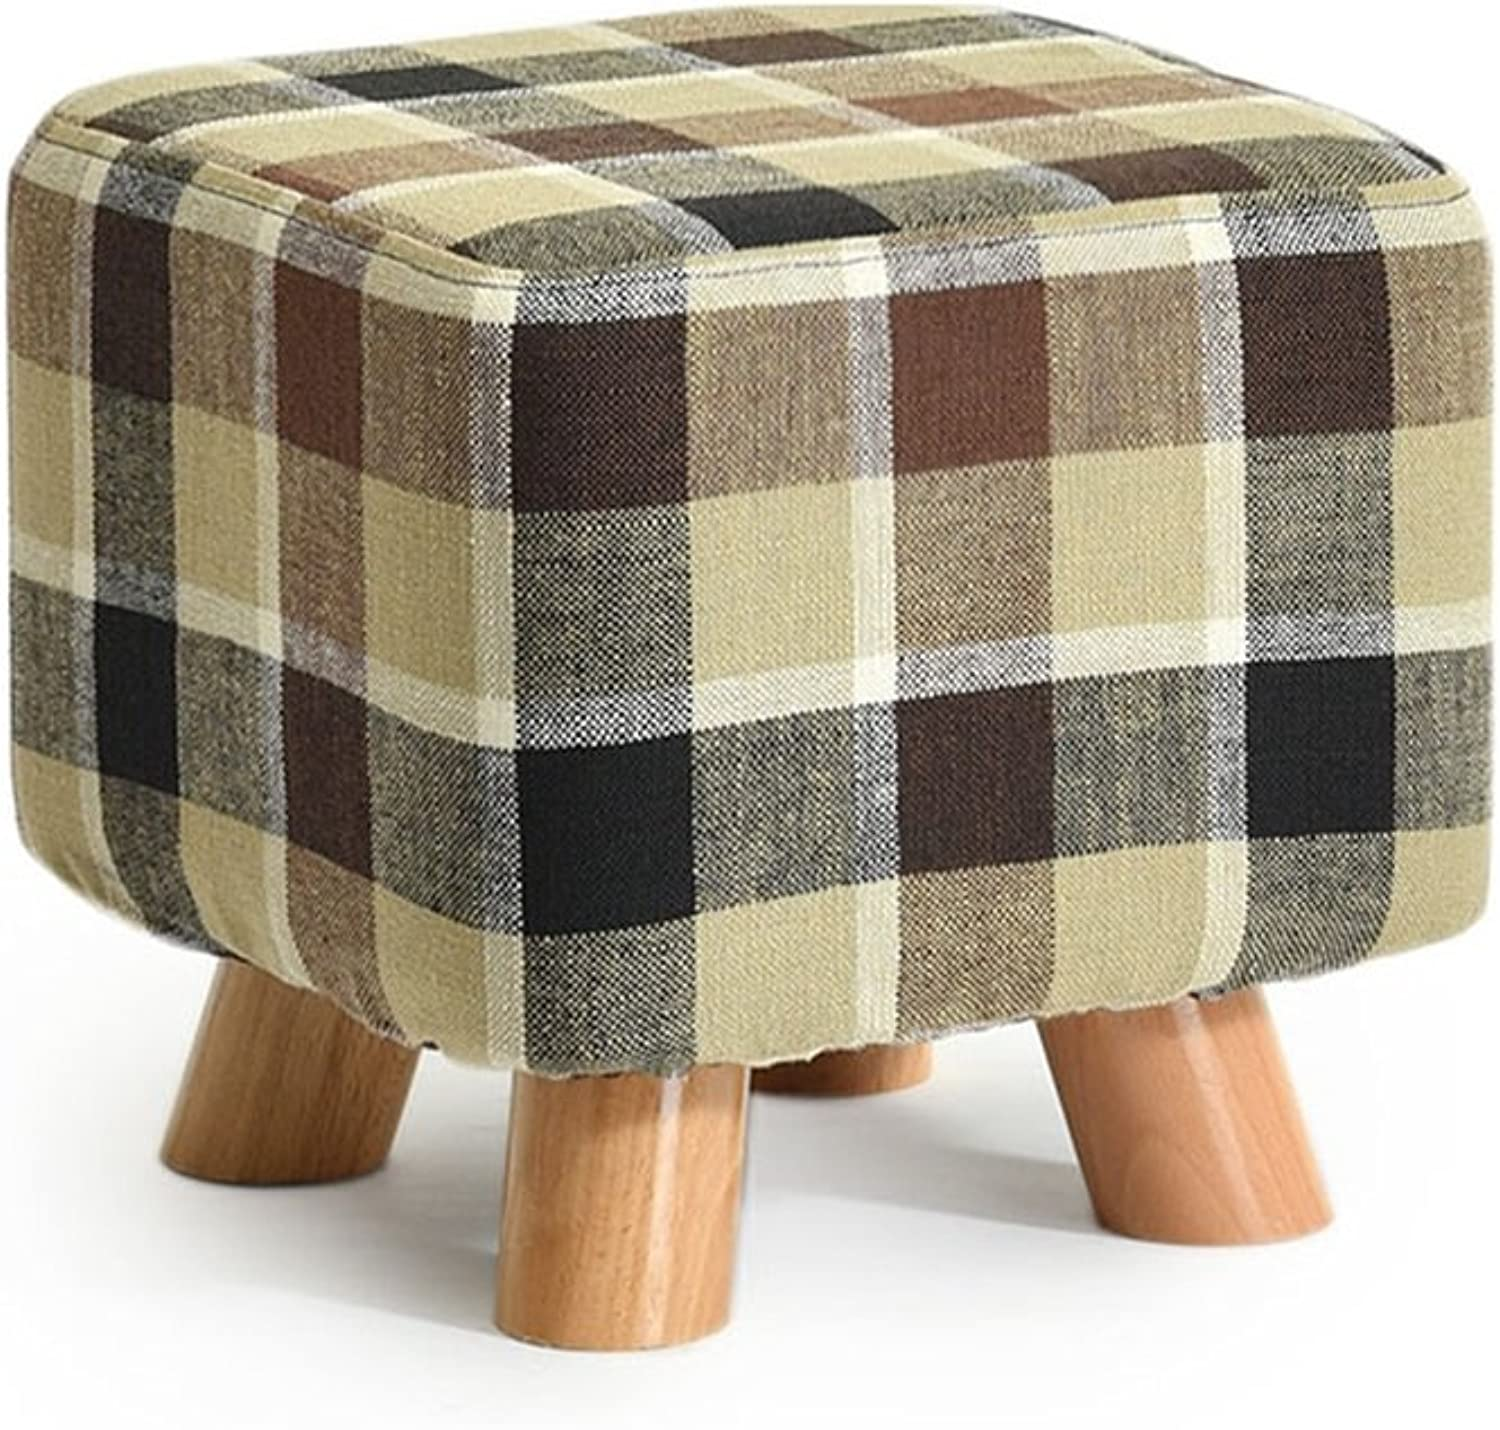 Solid Wood shoes Stool Square Upholstered Footstool Sofa Low Stool Footrest Small Seat Foot Rest Chair Brown Stripes